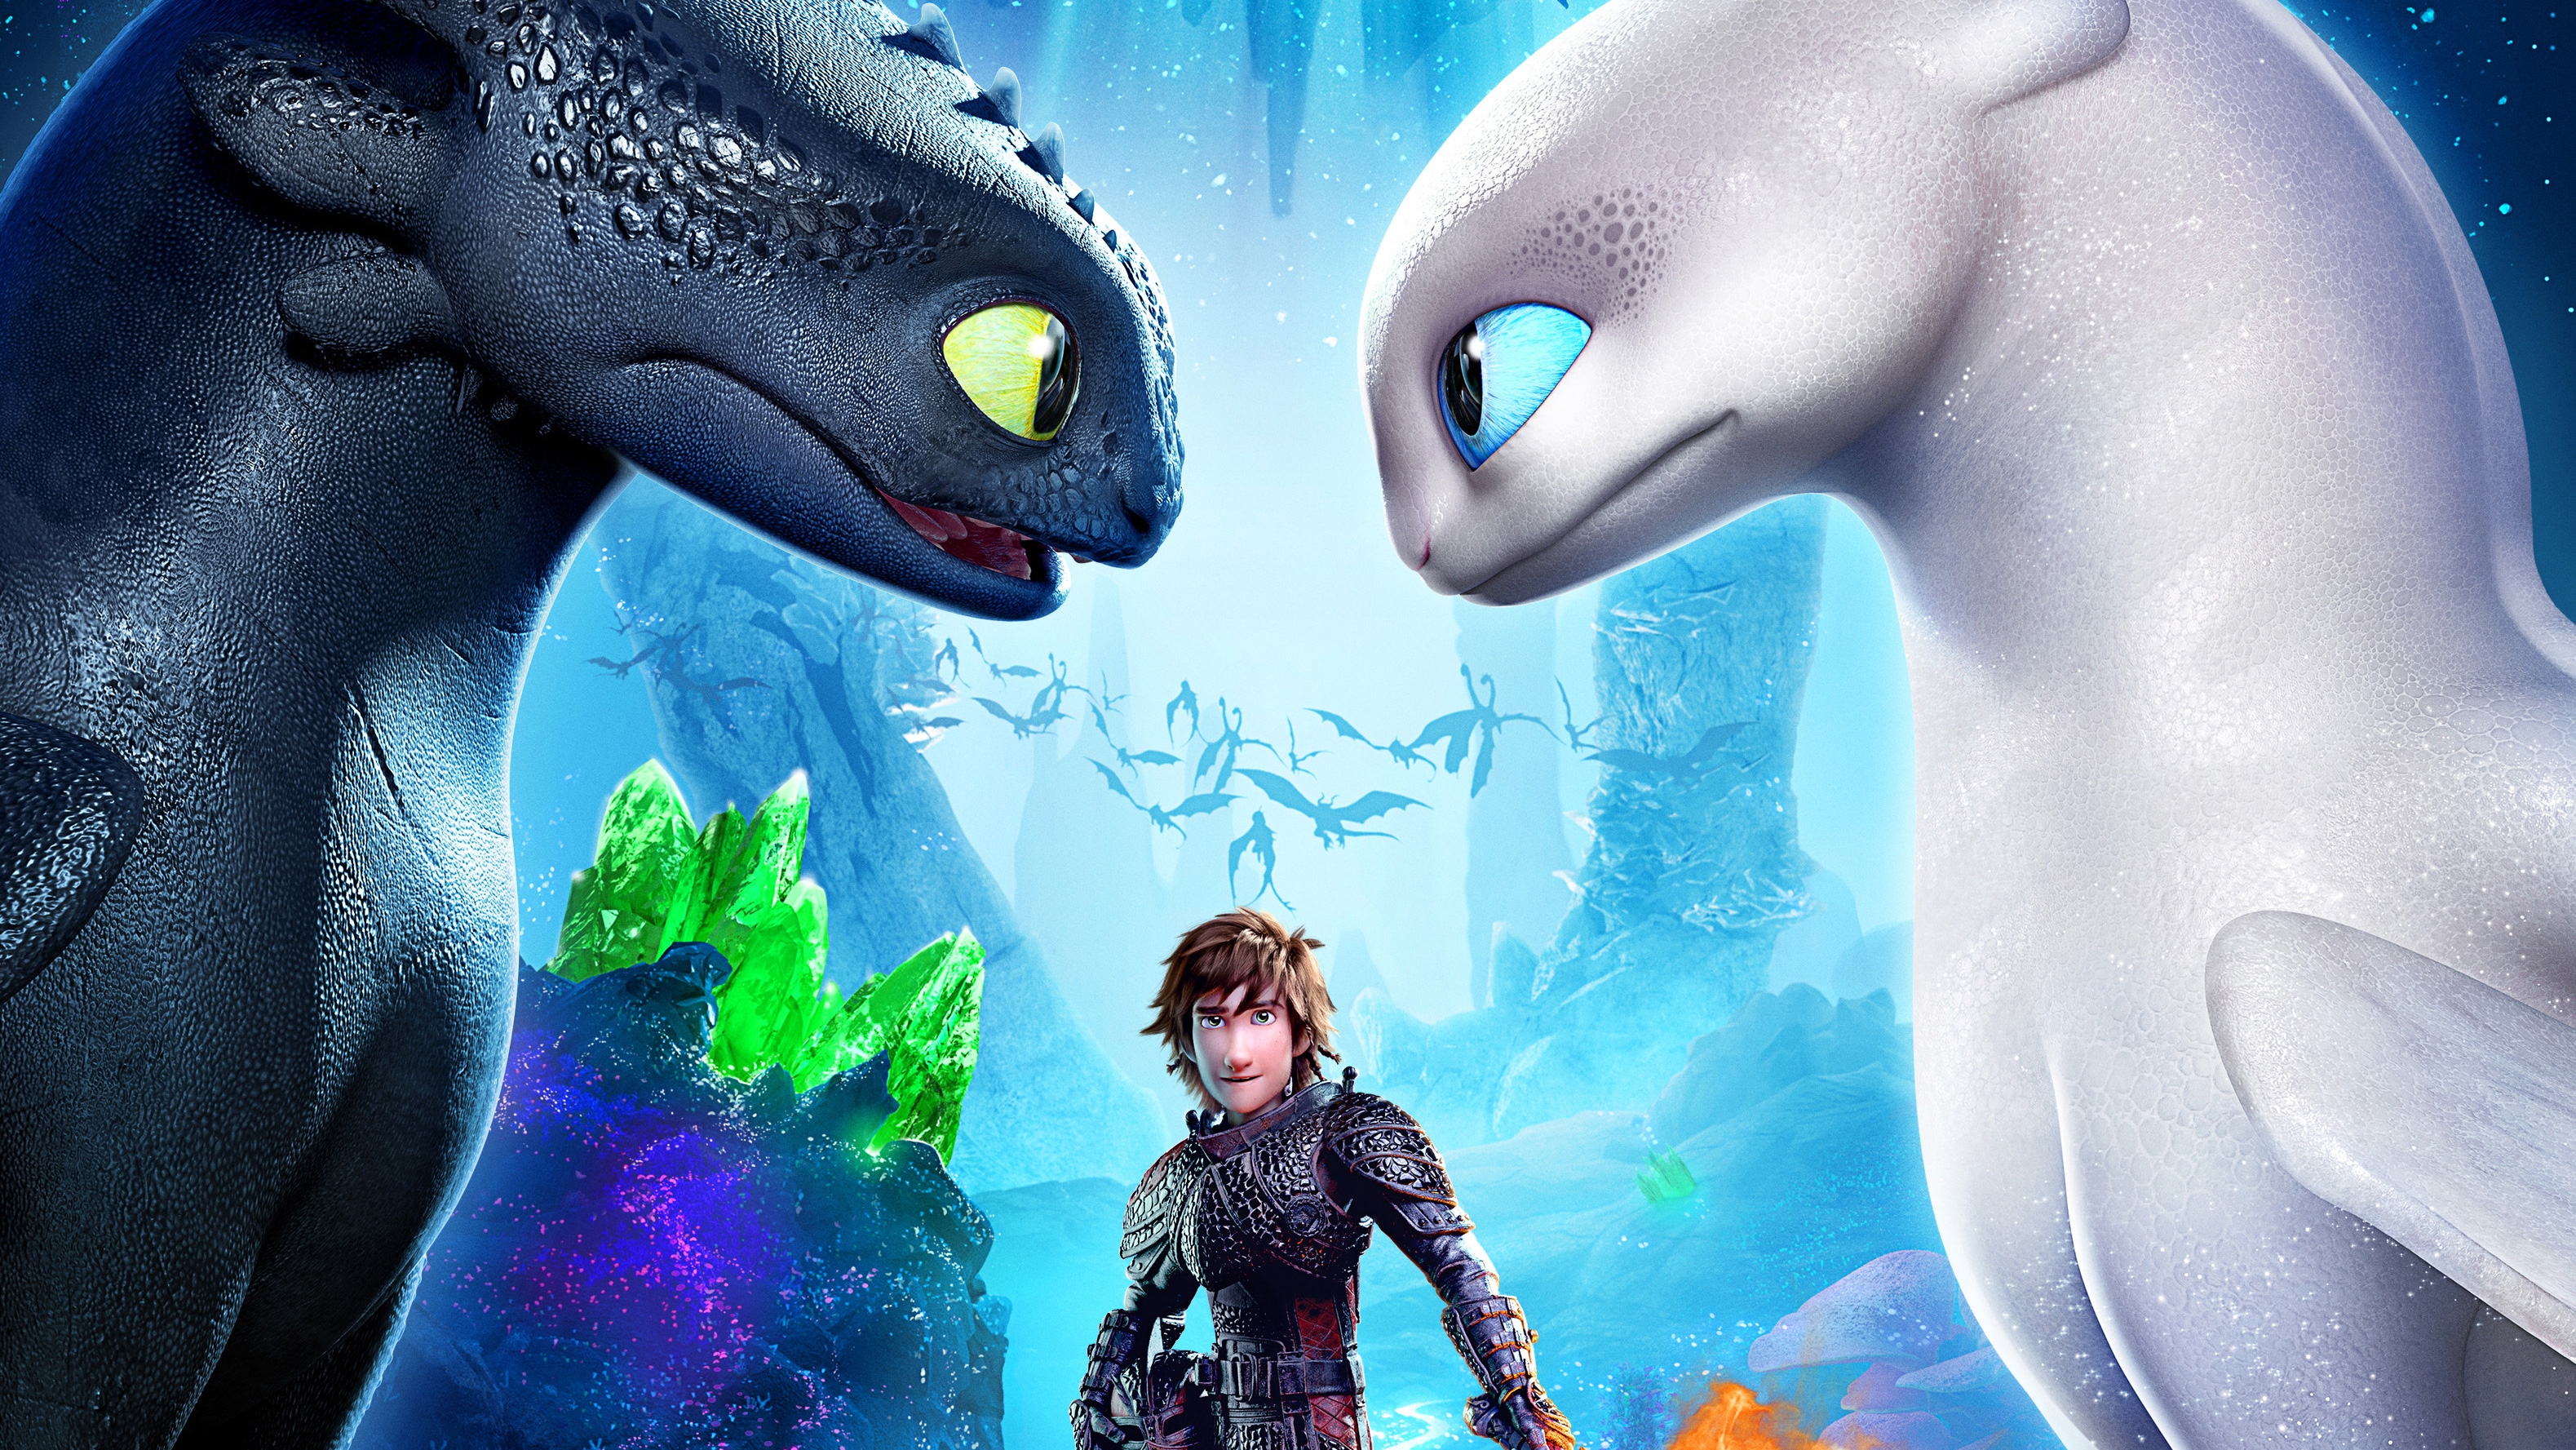 How To Train Your Dragon The Hidden World Movie Poster Hd Movies